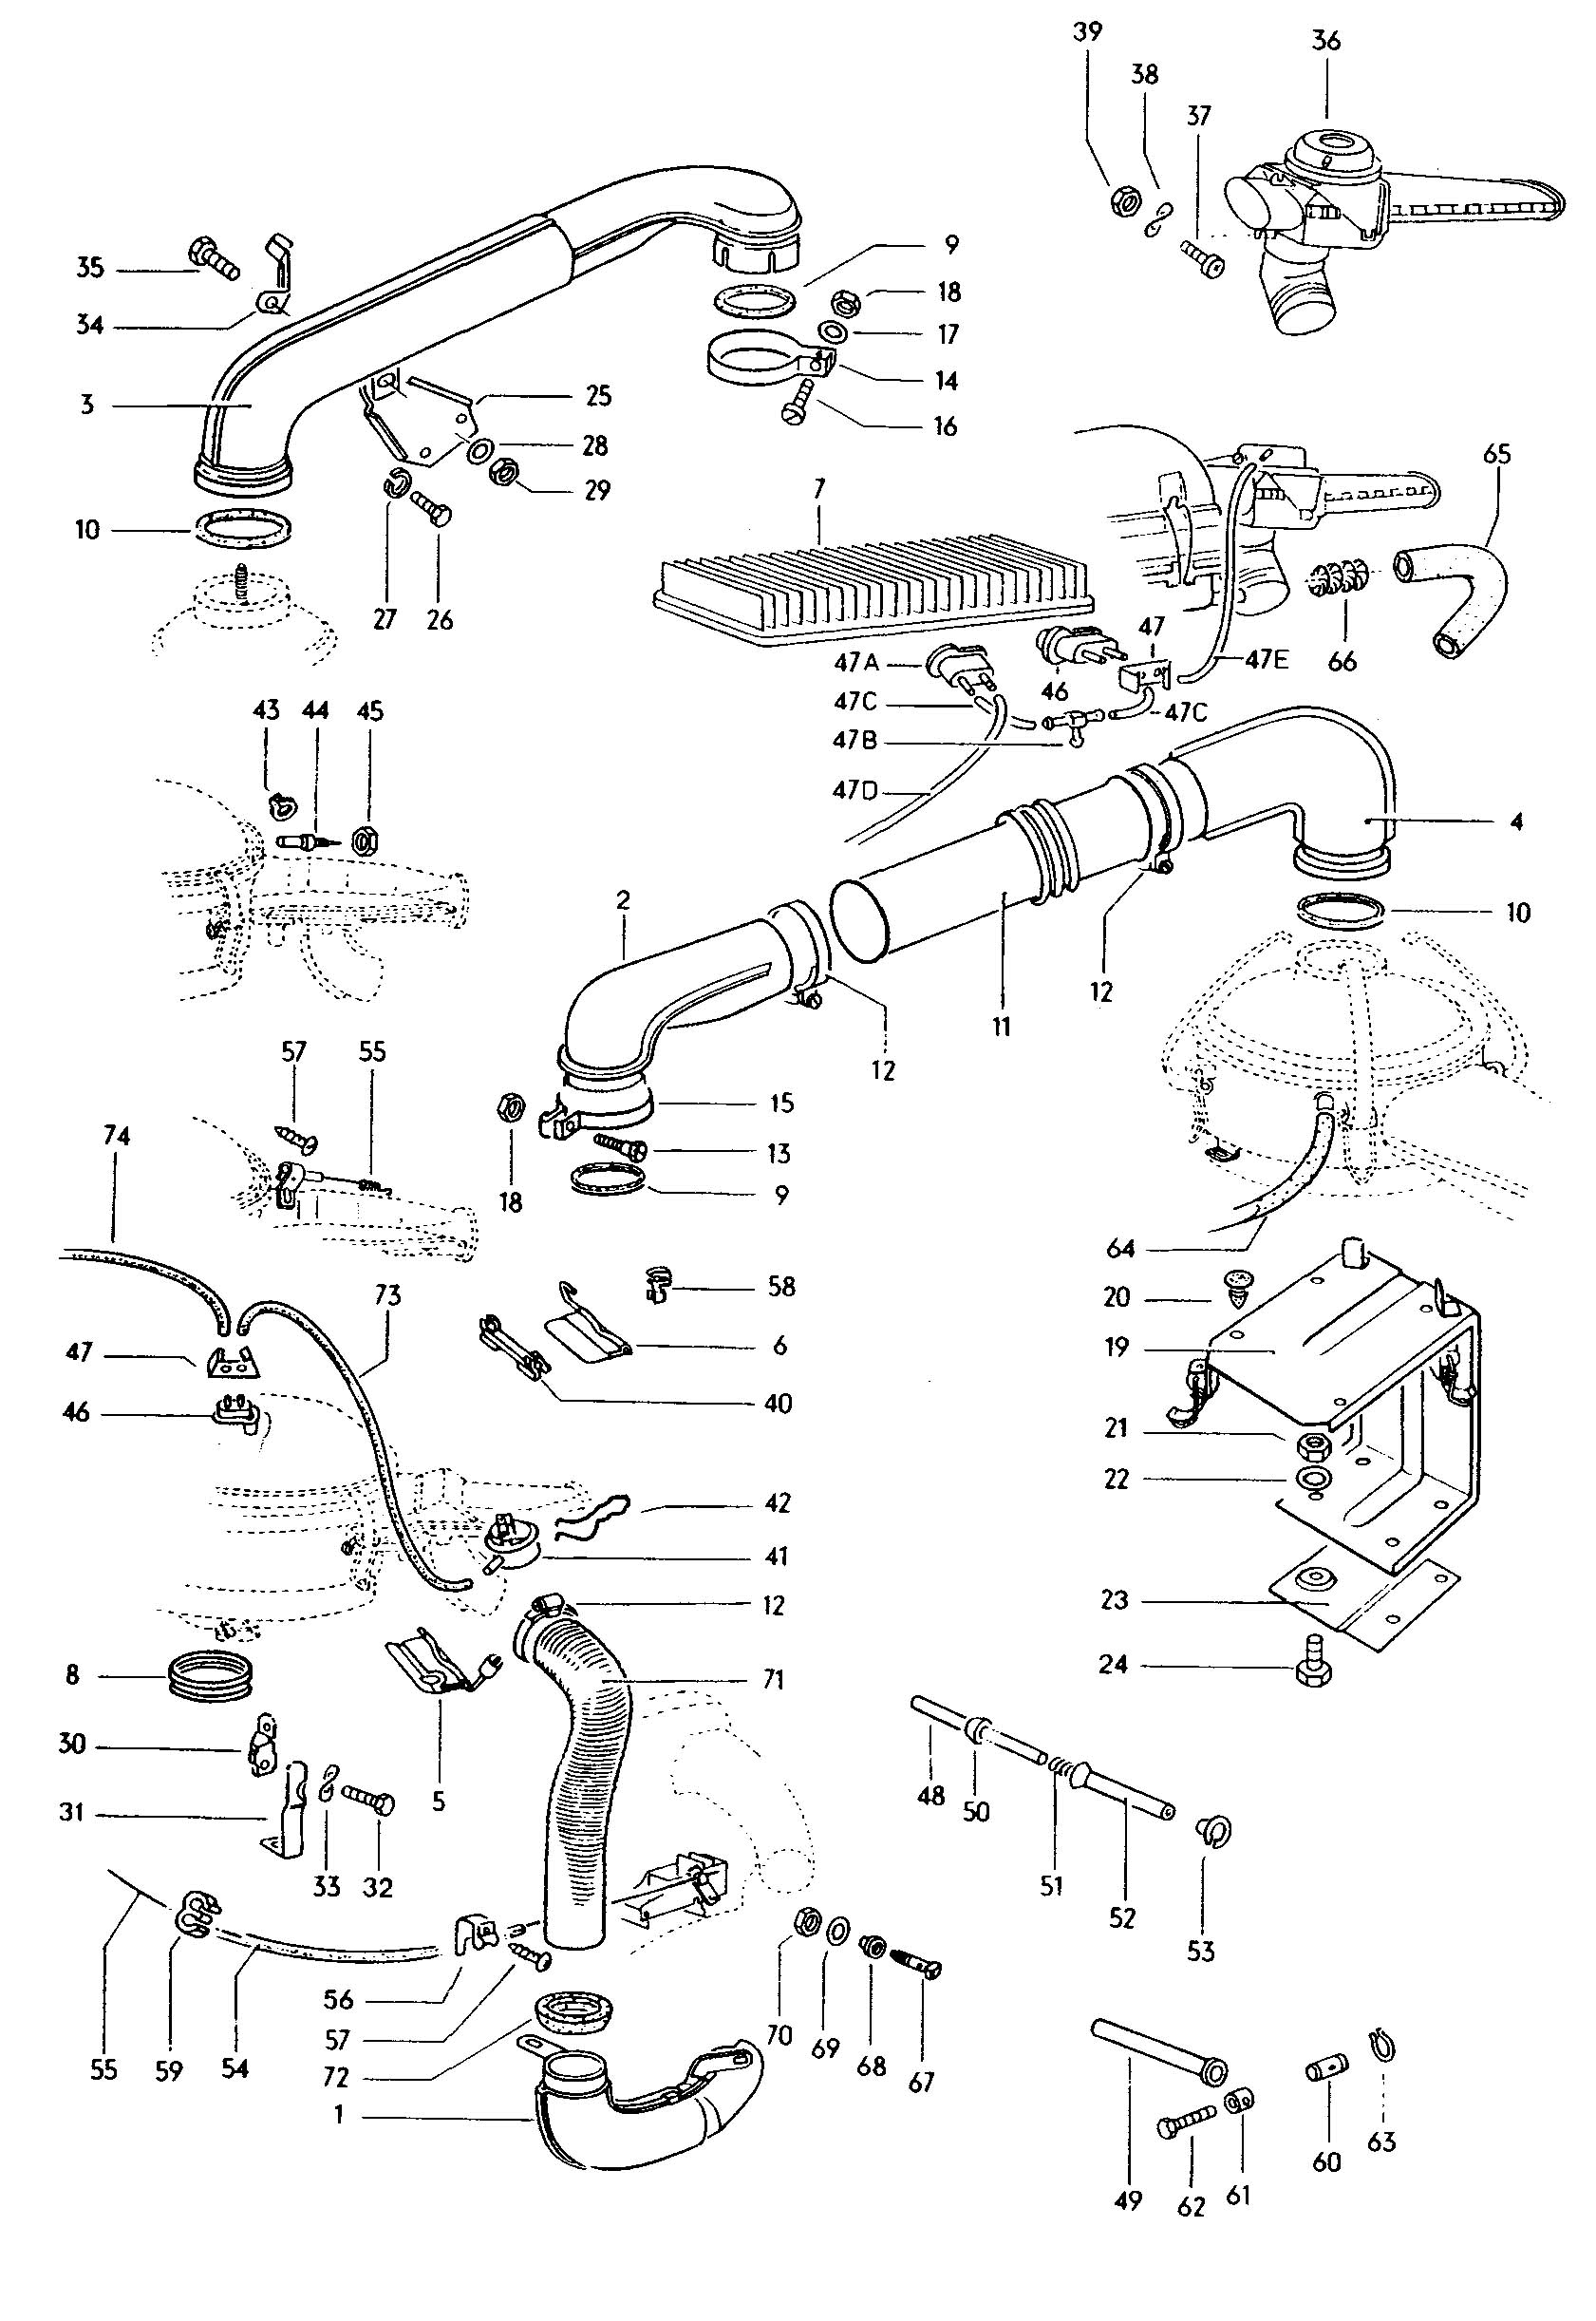 Kyosho Field Baja Beetle Parts Exploded View Images